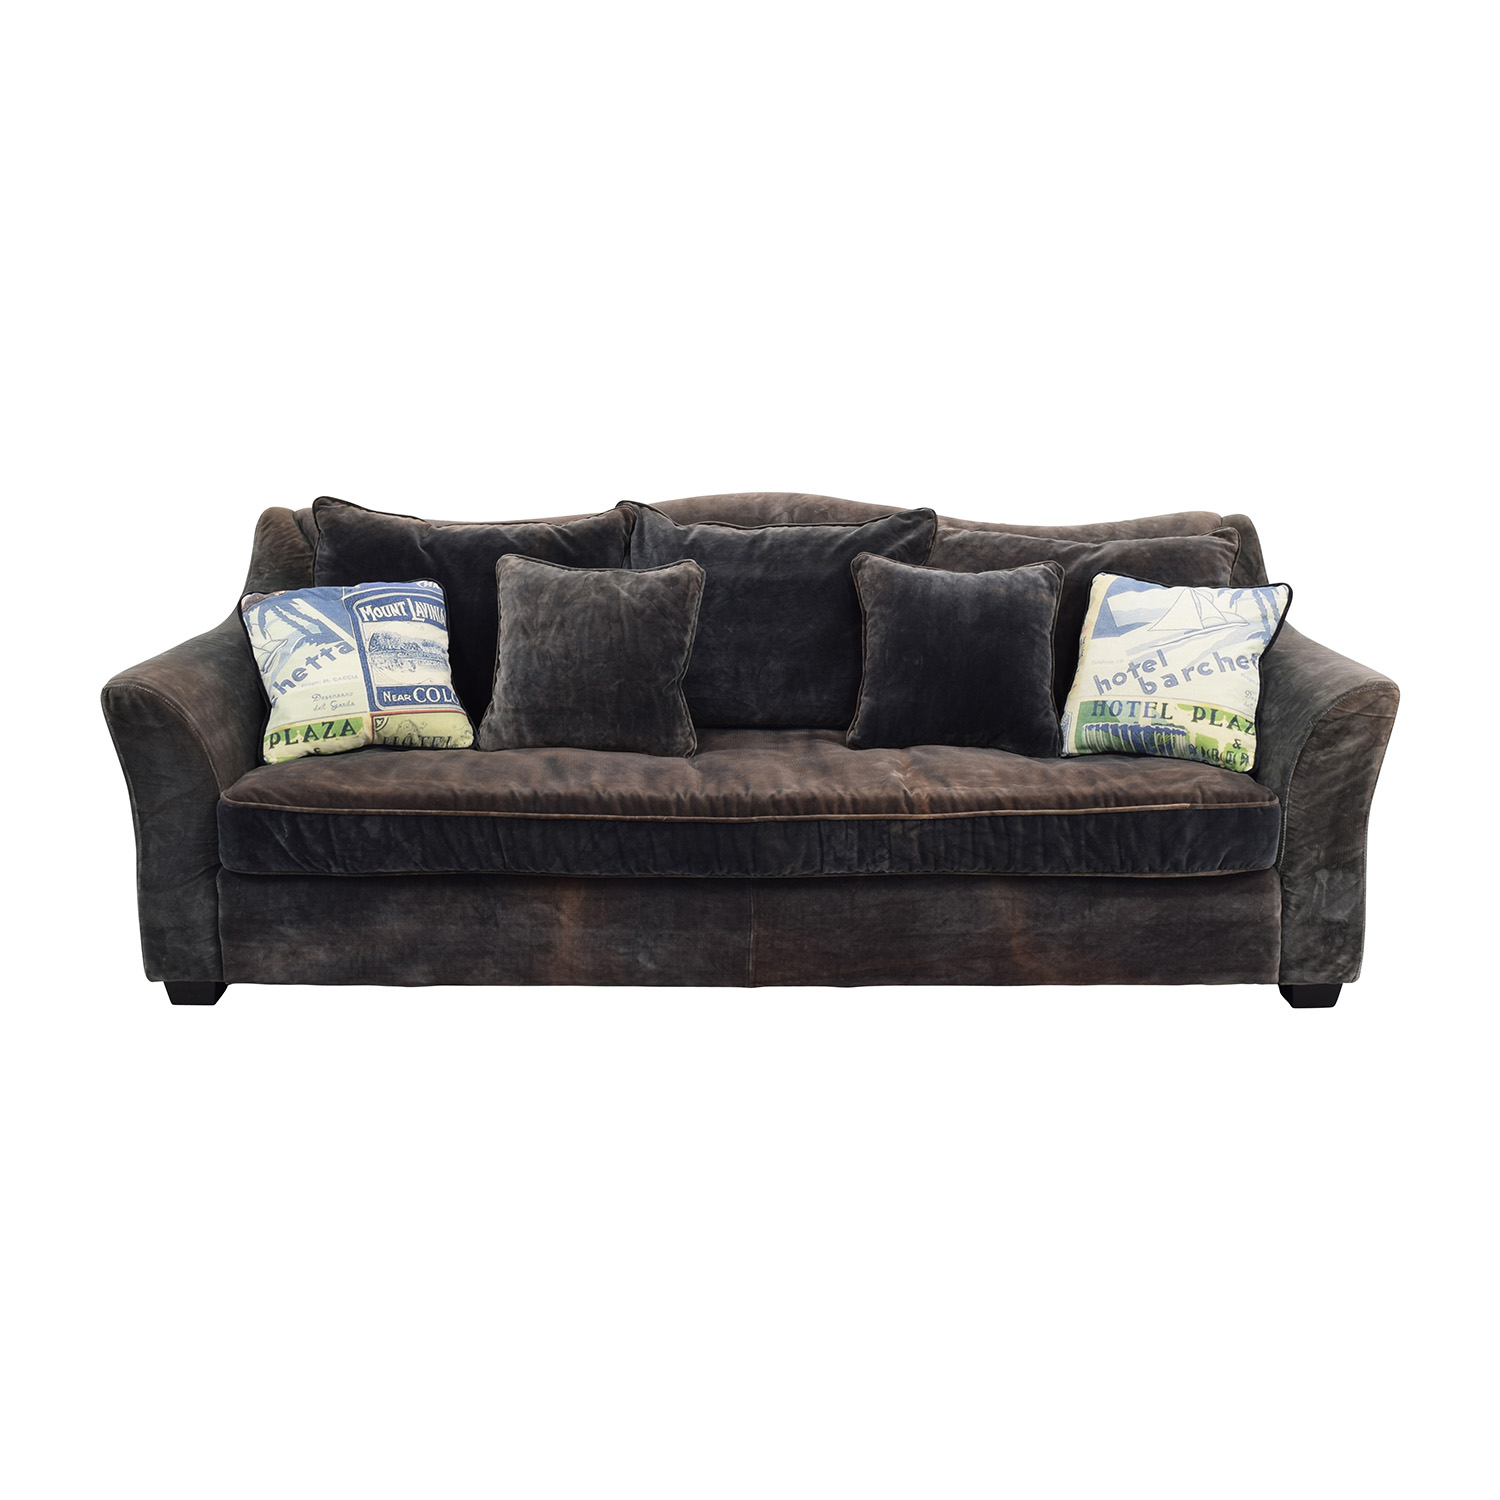 ABC Carpet and Home ABC Carpet & Home Timothy Oulton Grey Sofa second hand